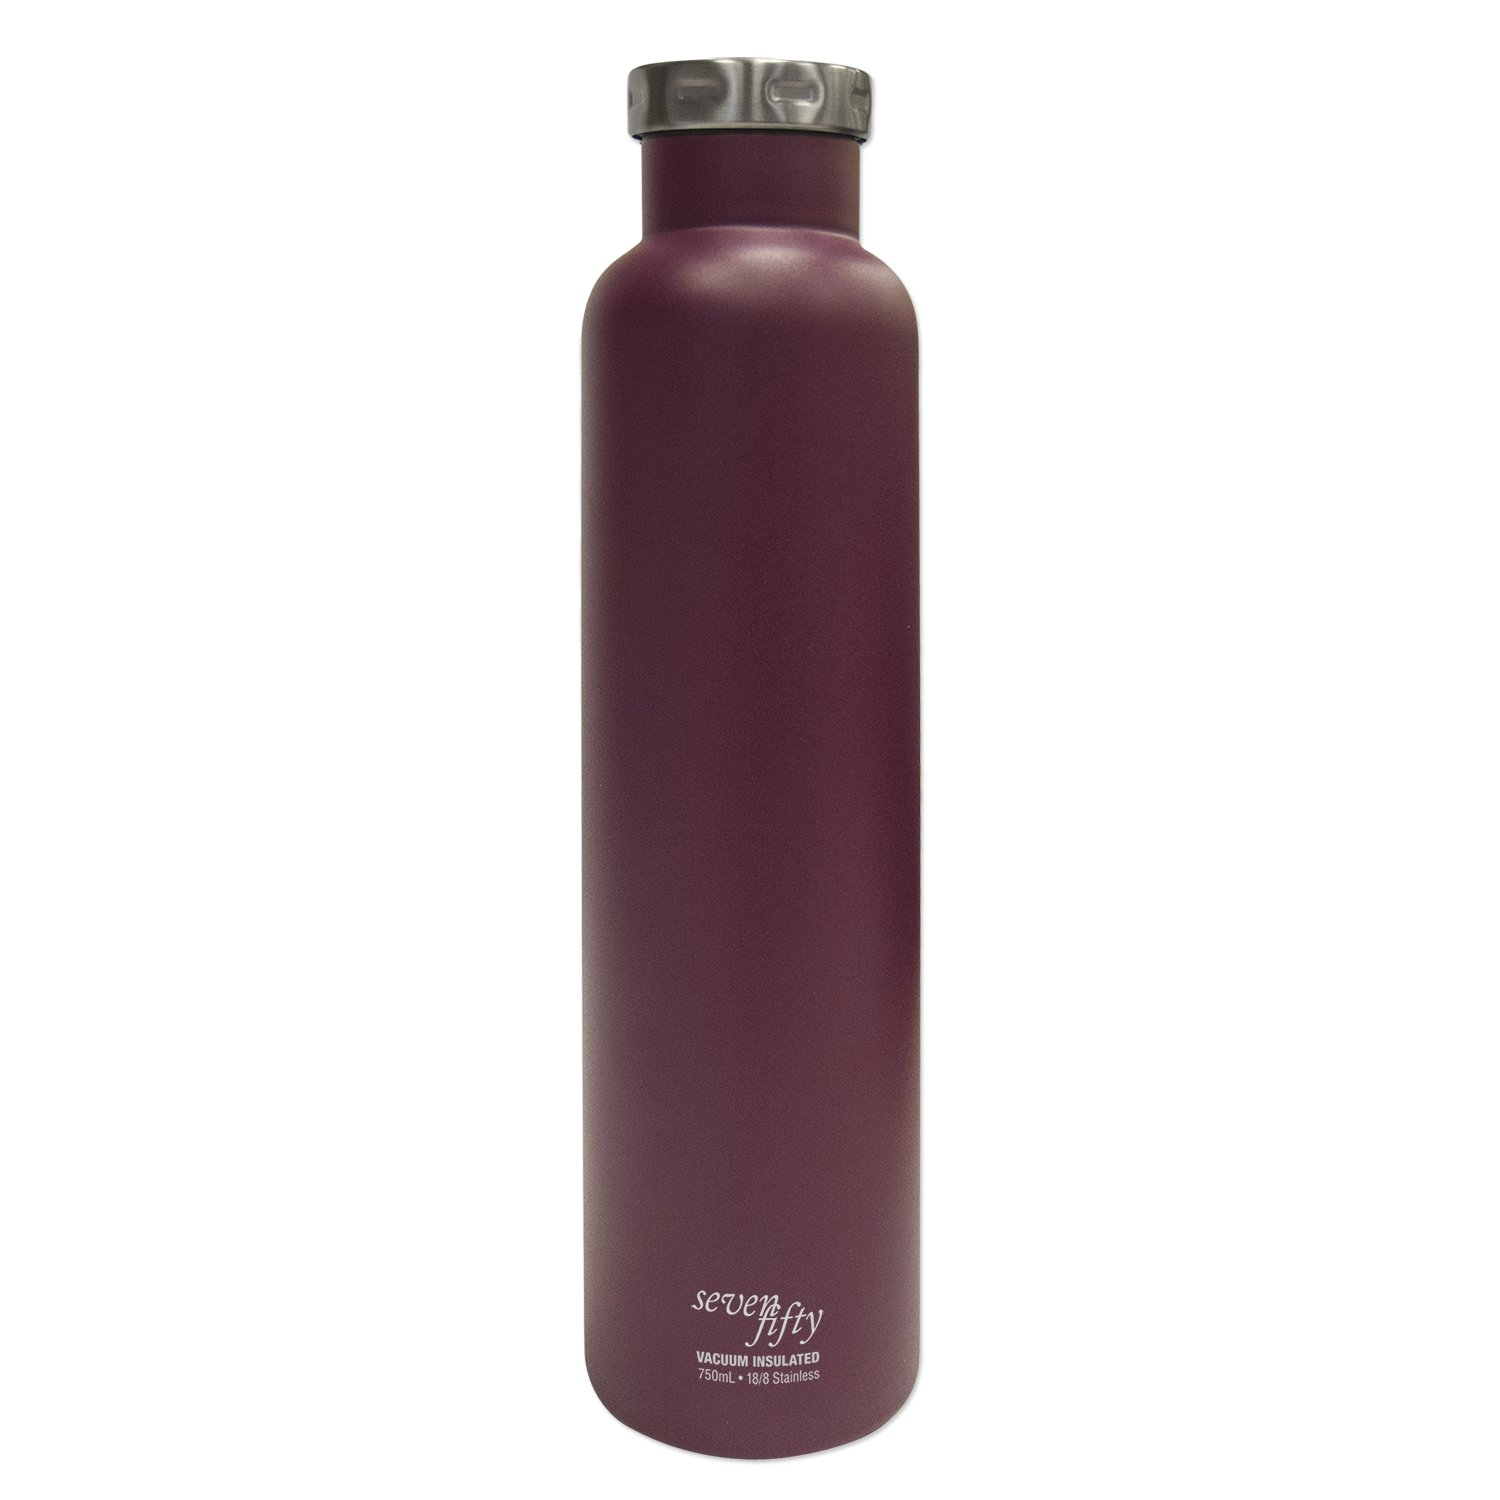 Seven Fifty Burgundy Vacuum-Insulated Stainless Steel Wine Growler - 750 mL Capacity